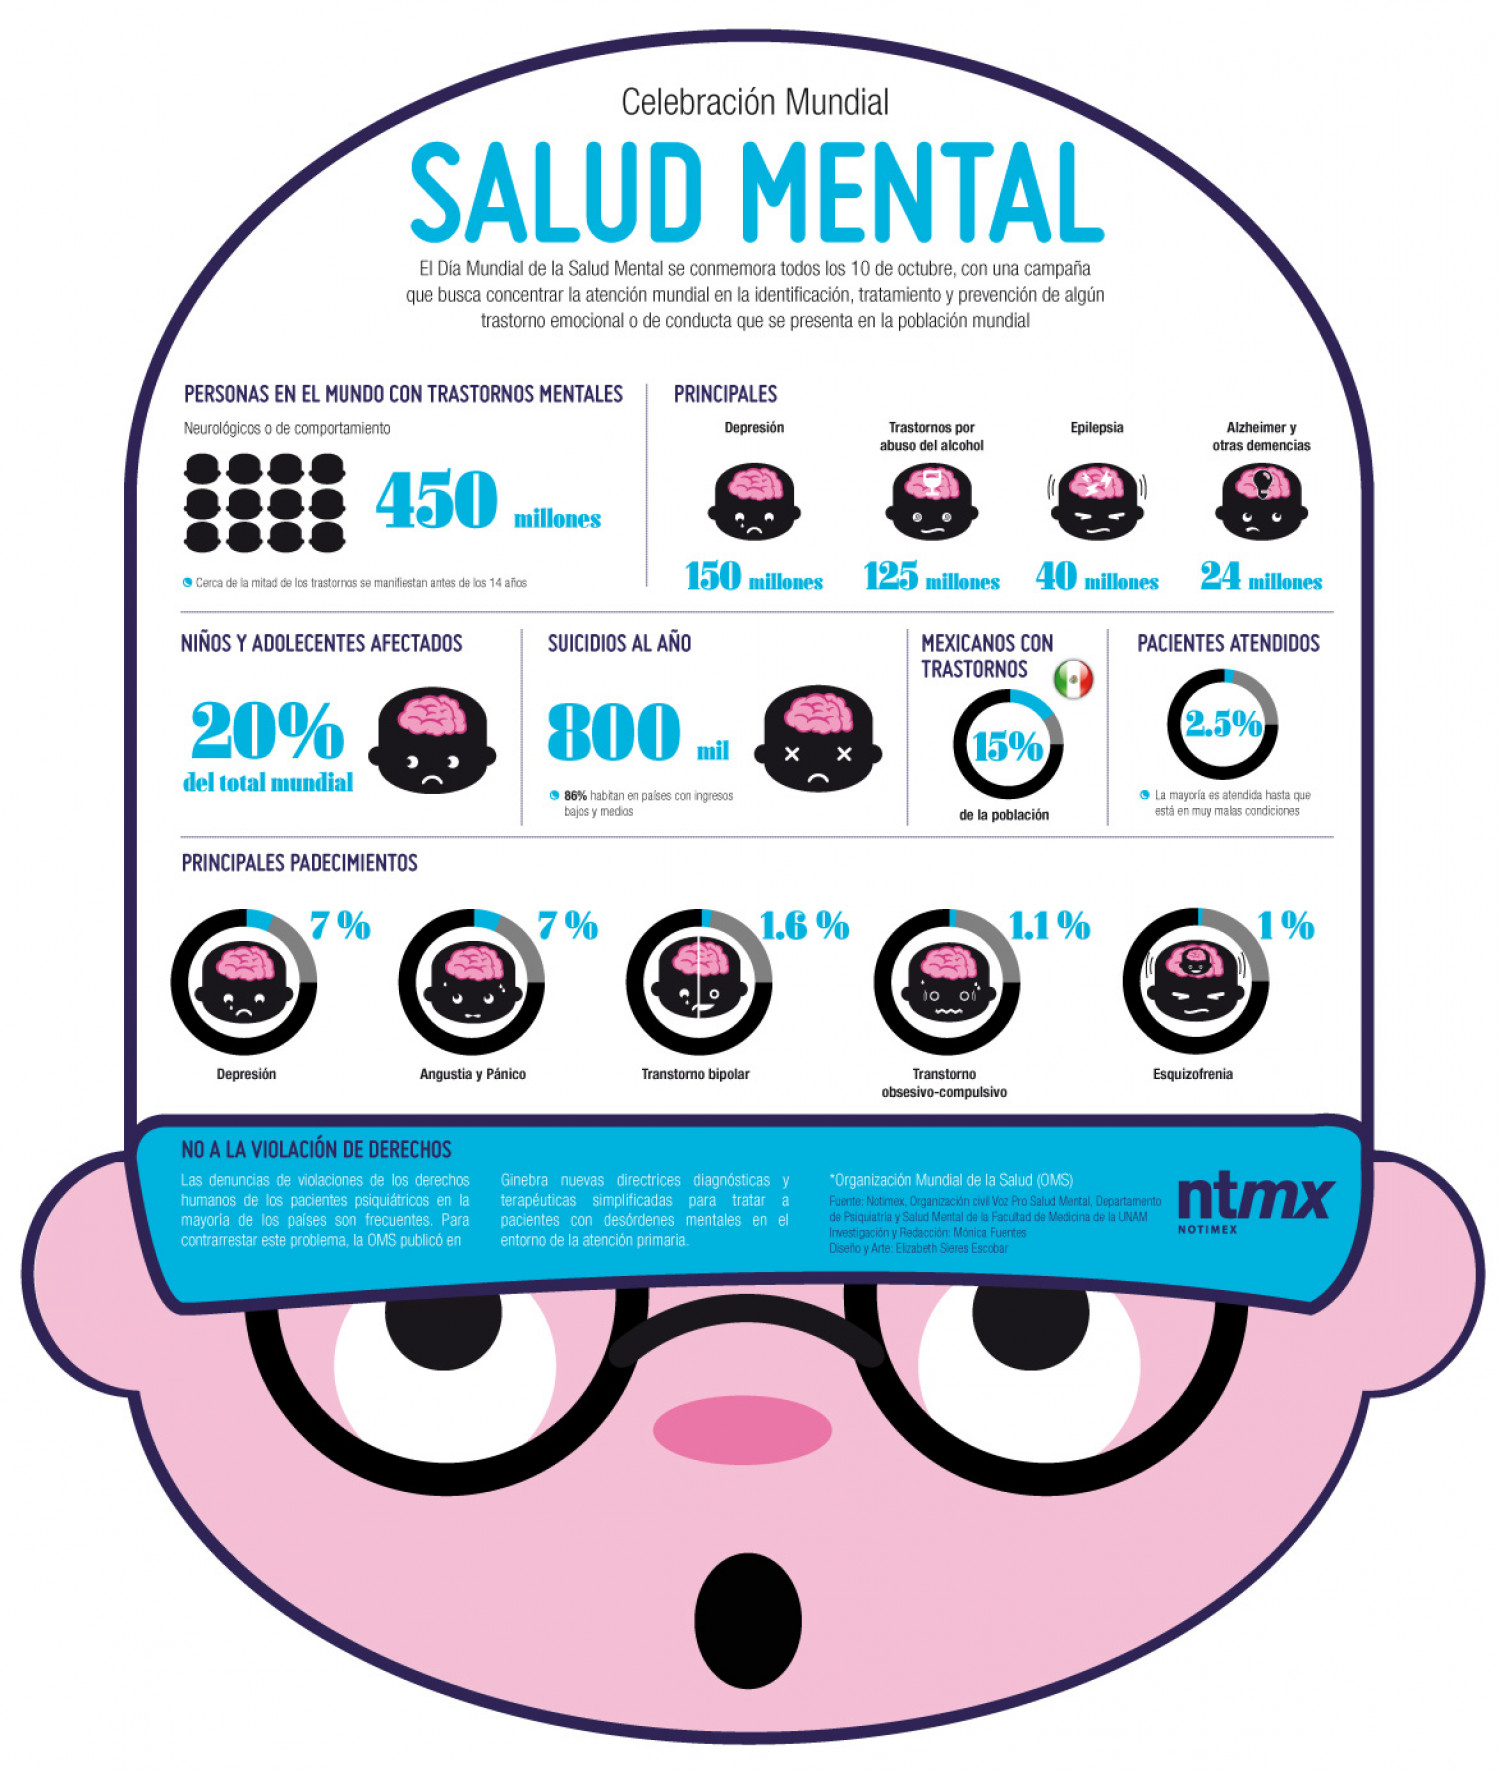 Salud Mental Infographic